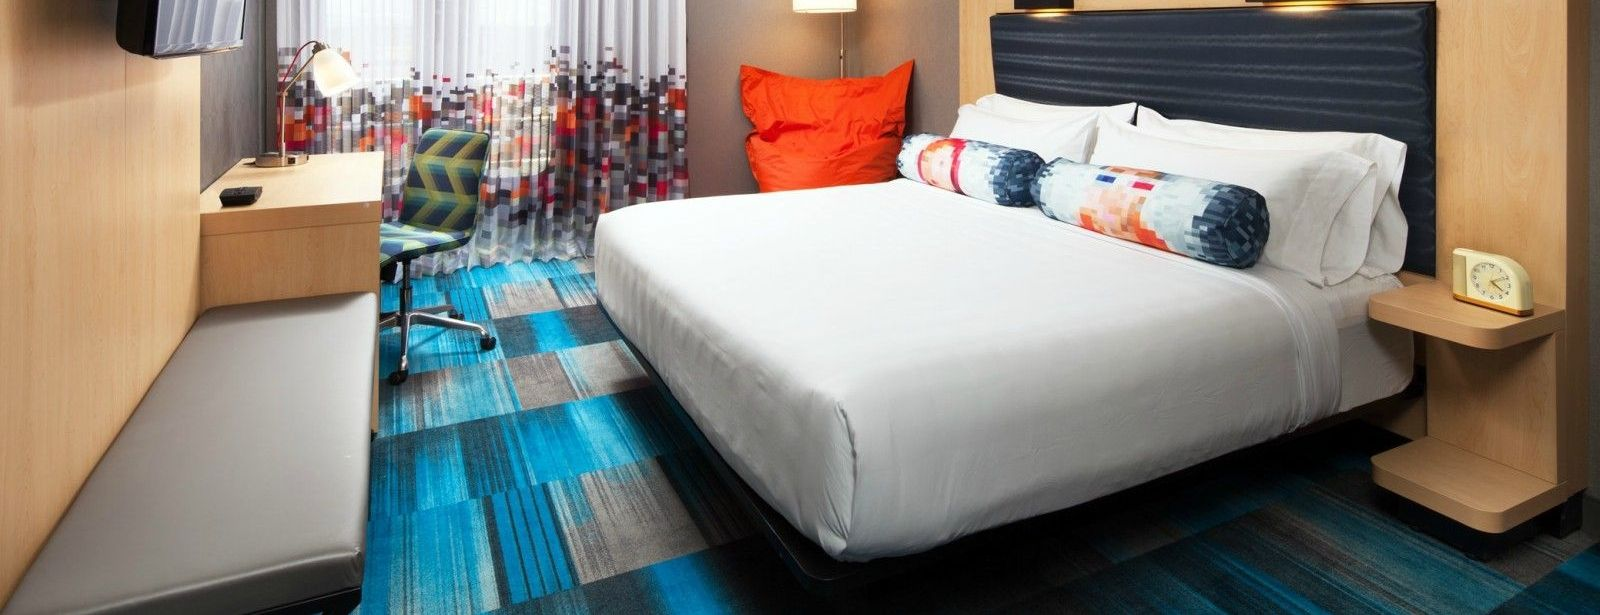 Aloft room - king beds